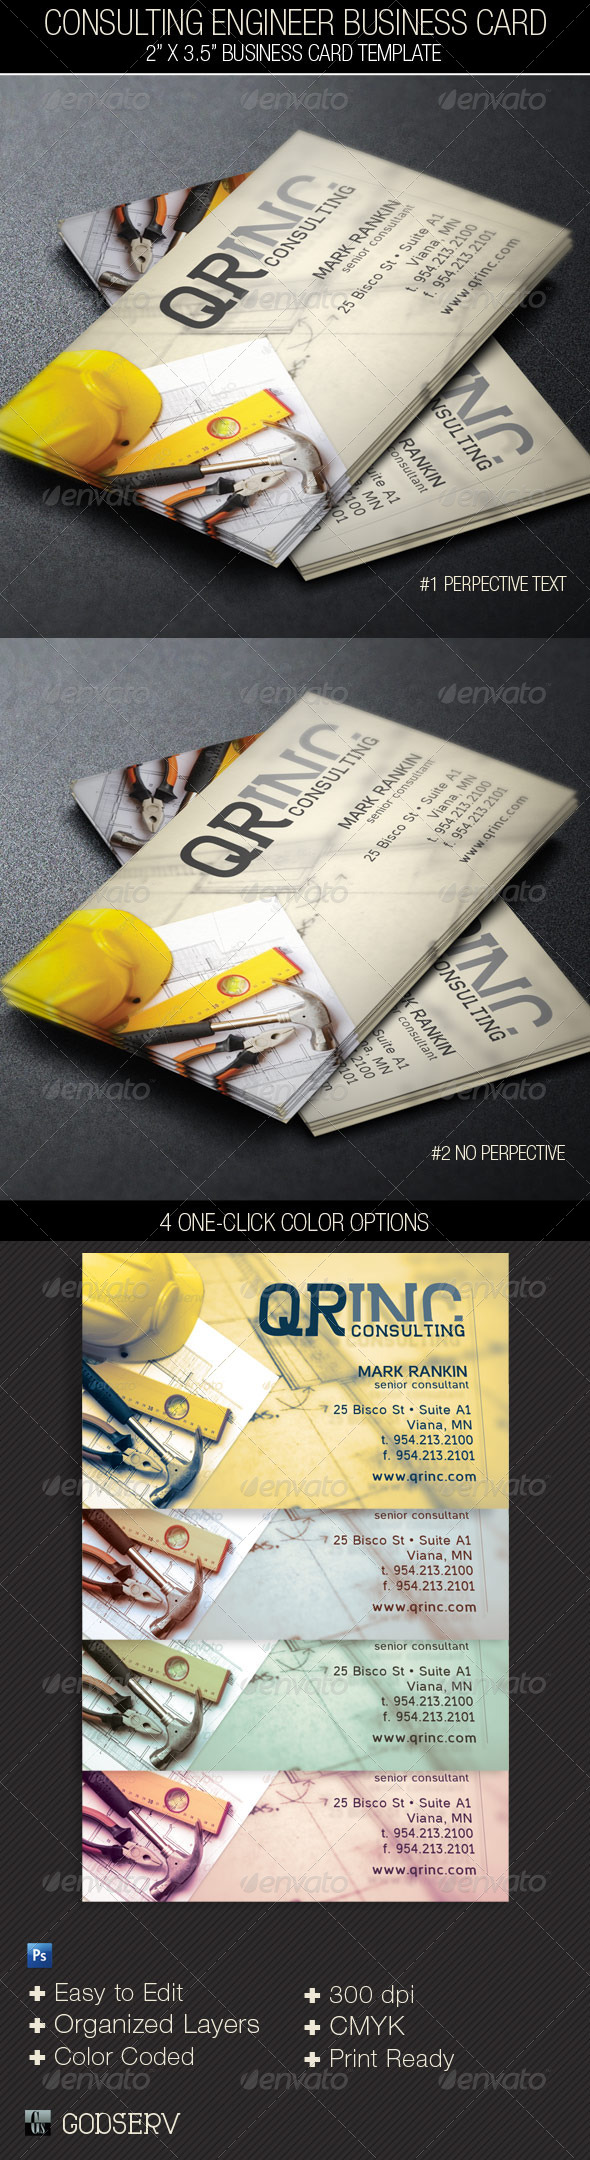 Consulting Engineer Business Card Template - Industry Specific Business Cards